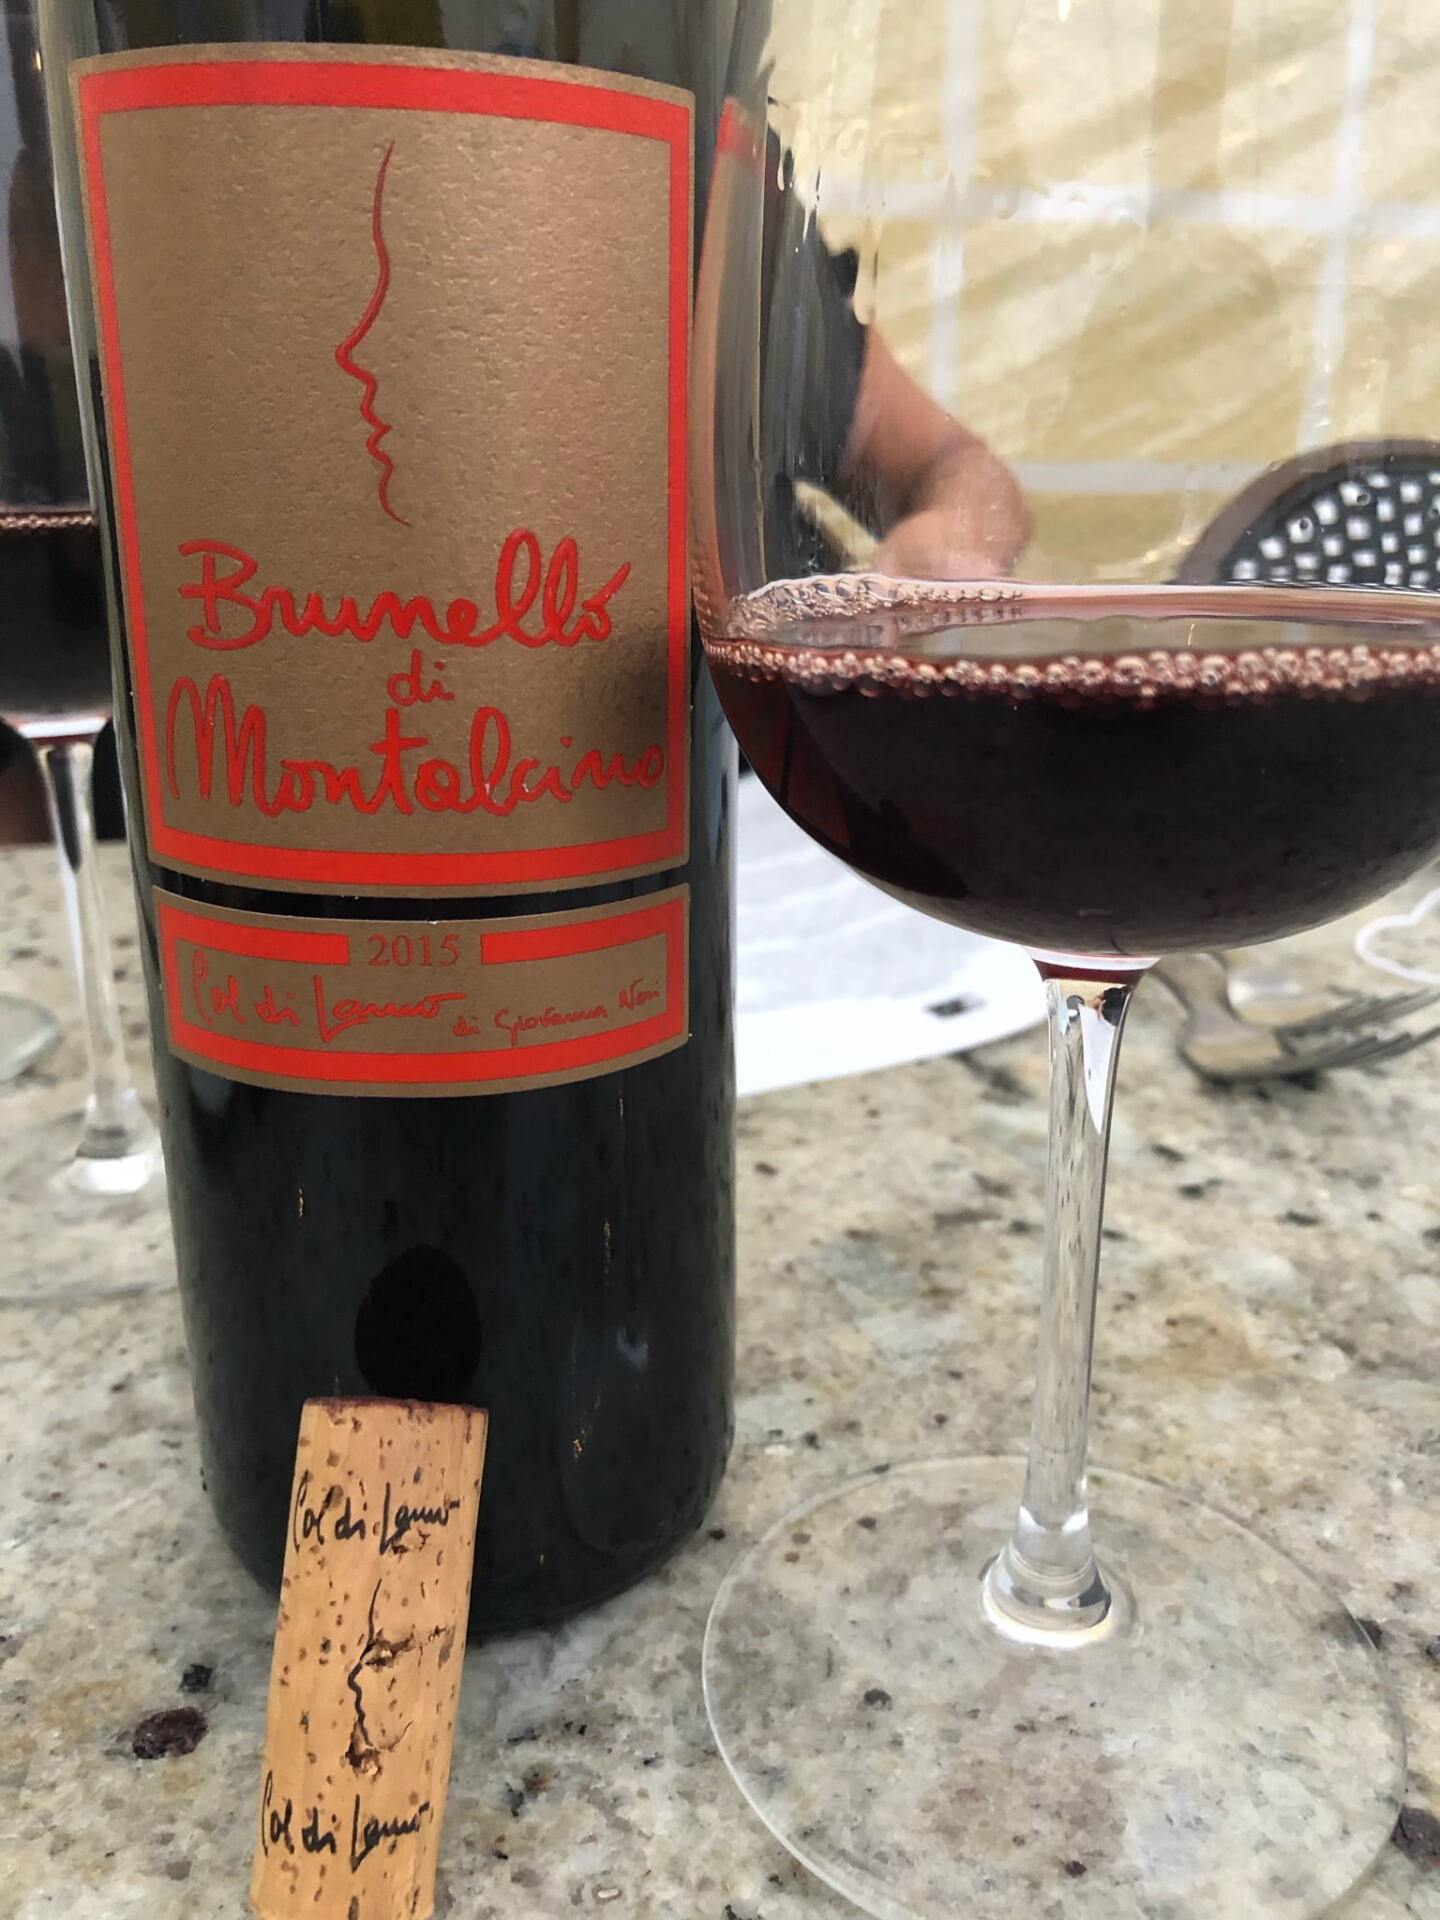 Col di Lamo Brunello in glass